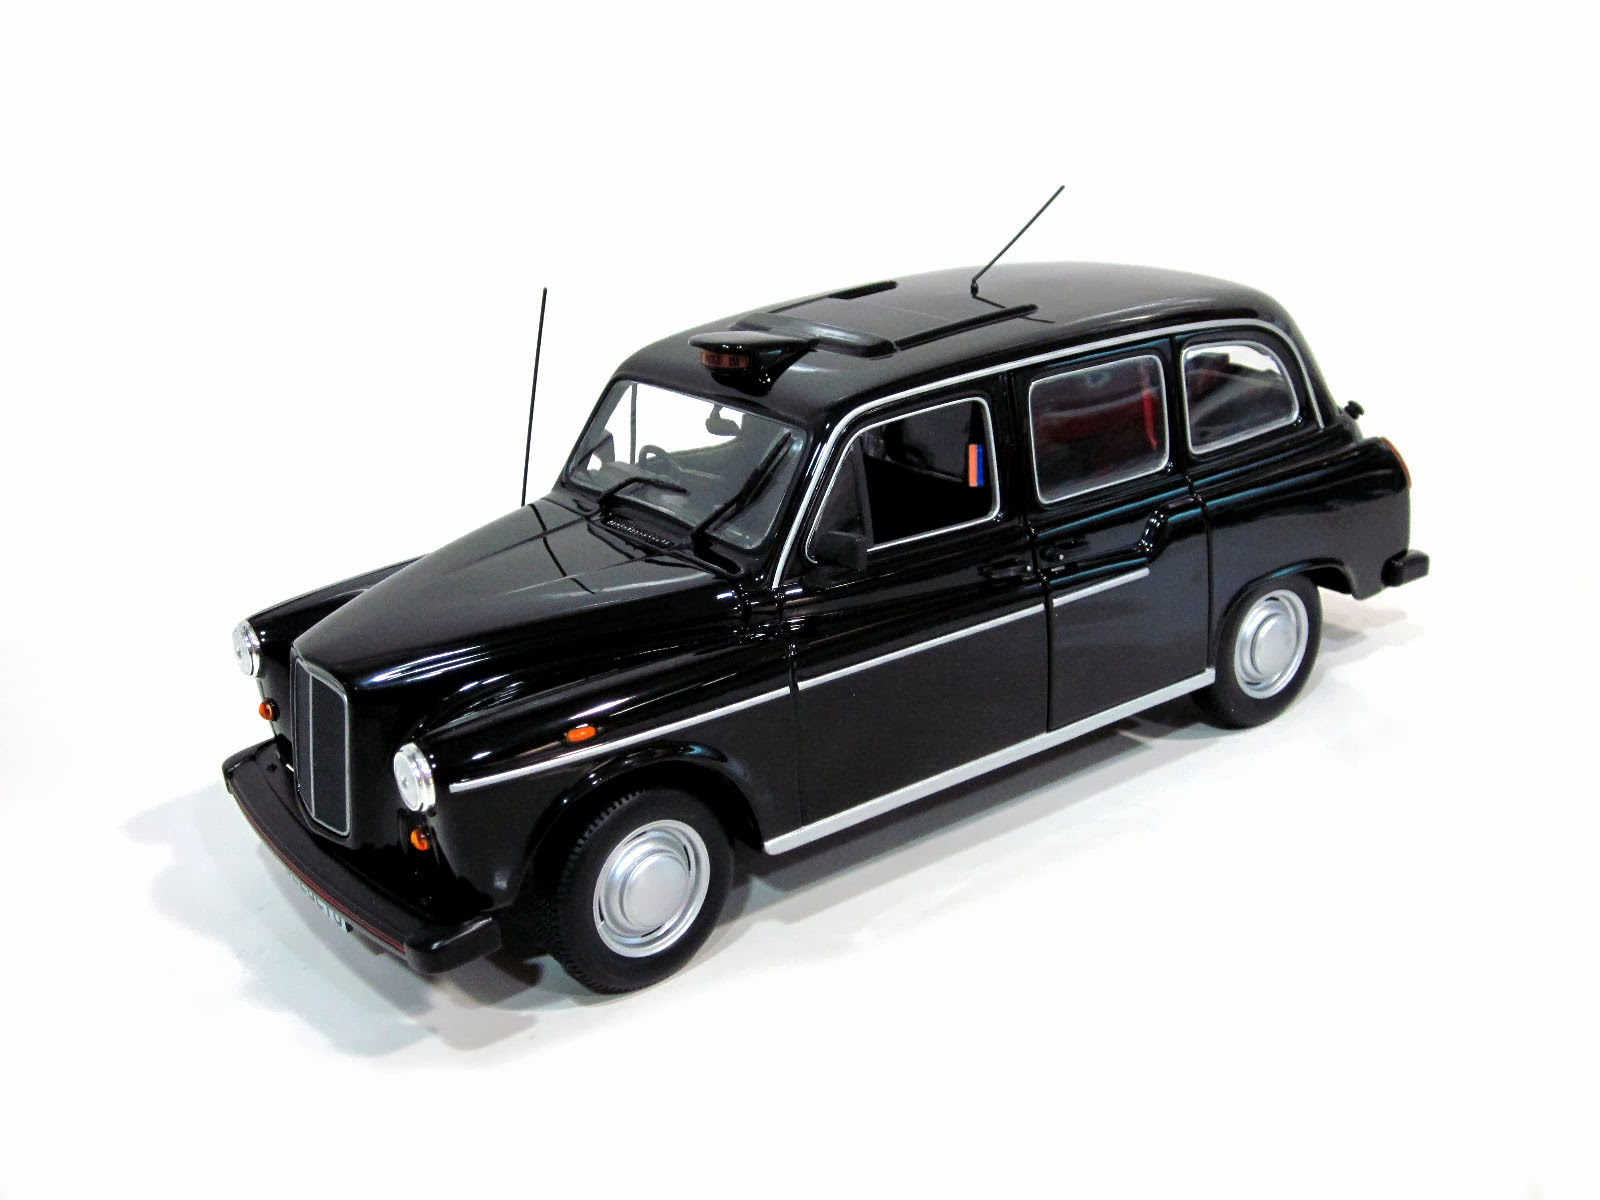 "Austin FX4 2.7 Fairway ""London Taxi"" '89 - Minichamps"